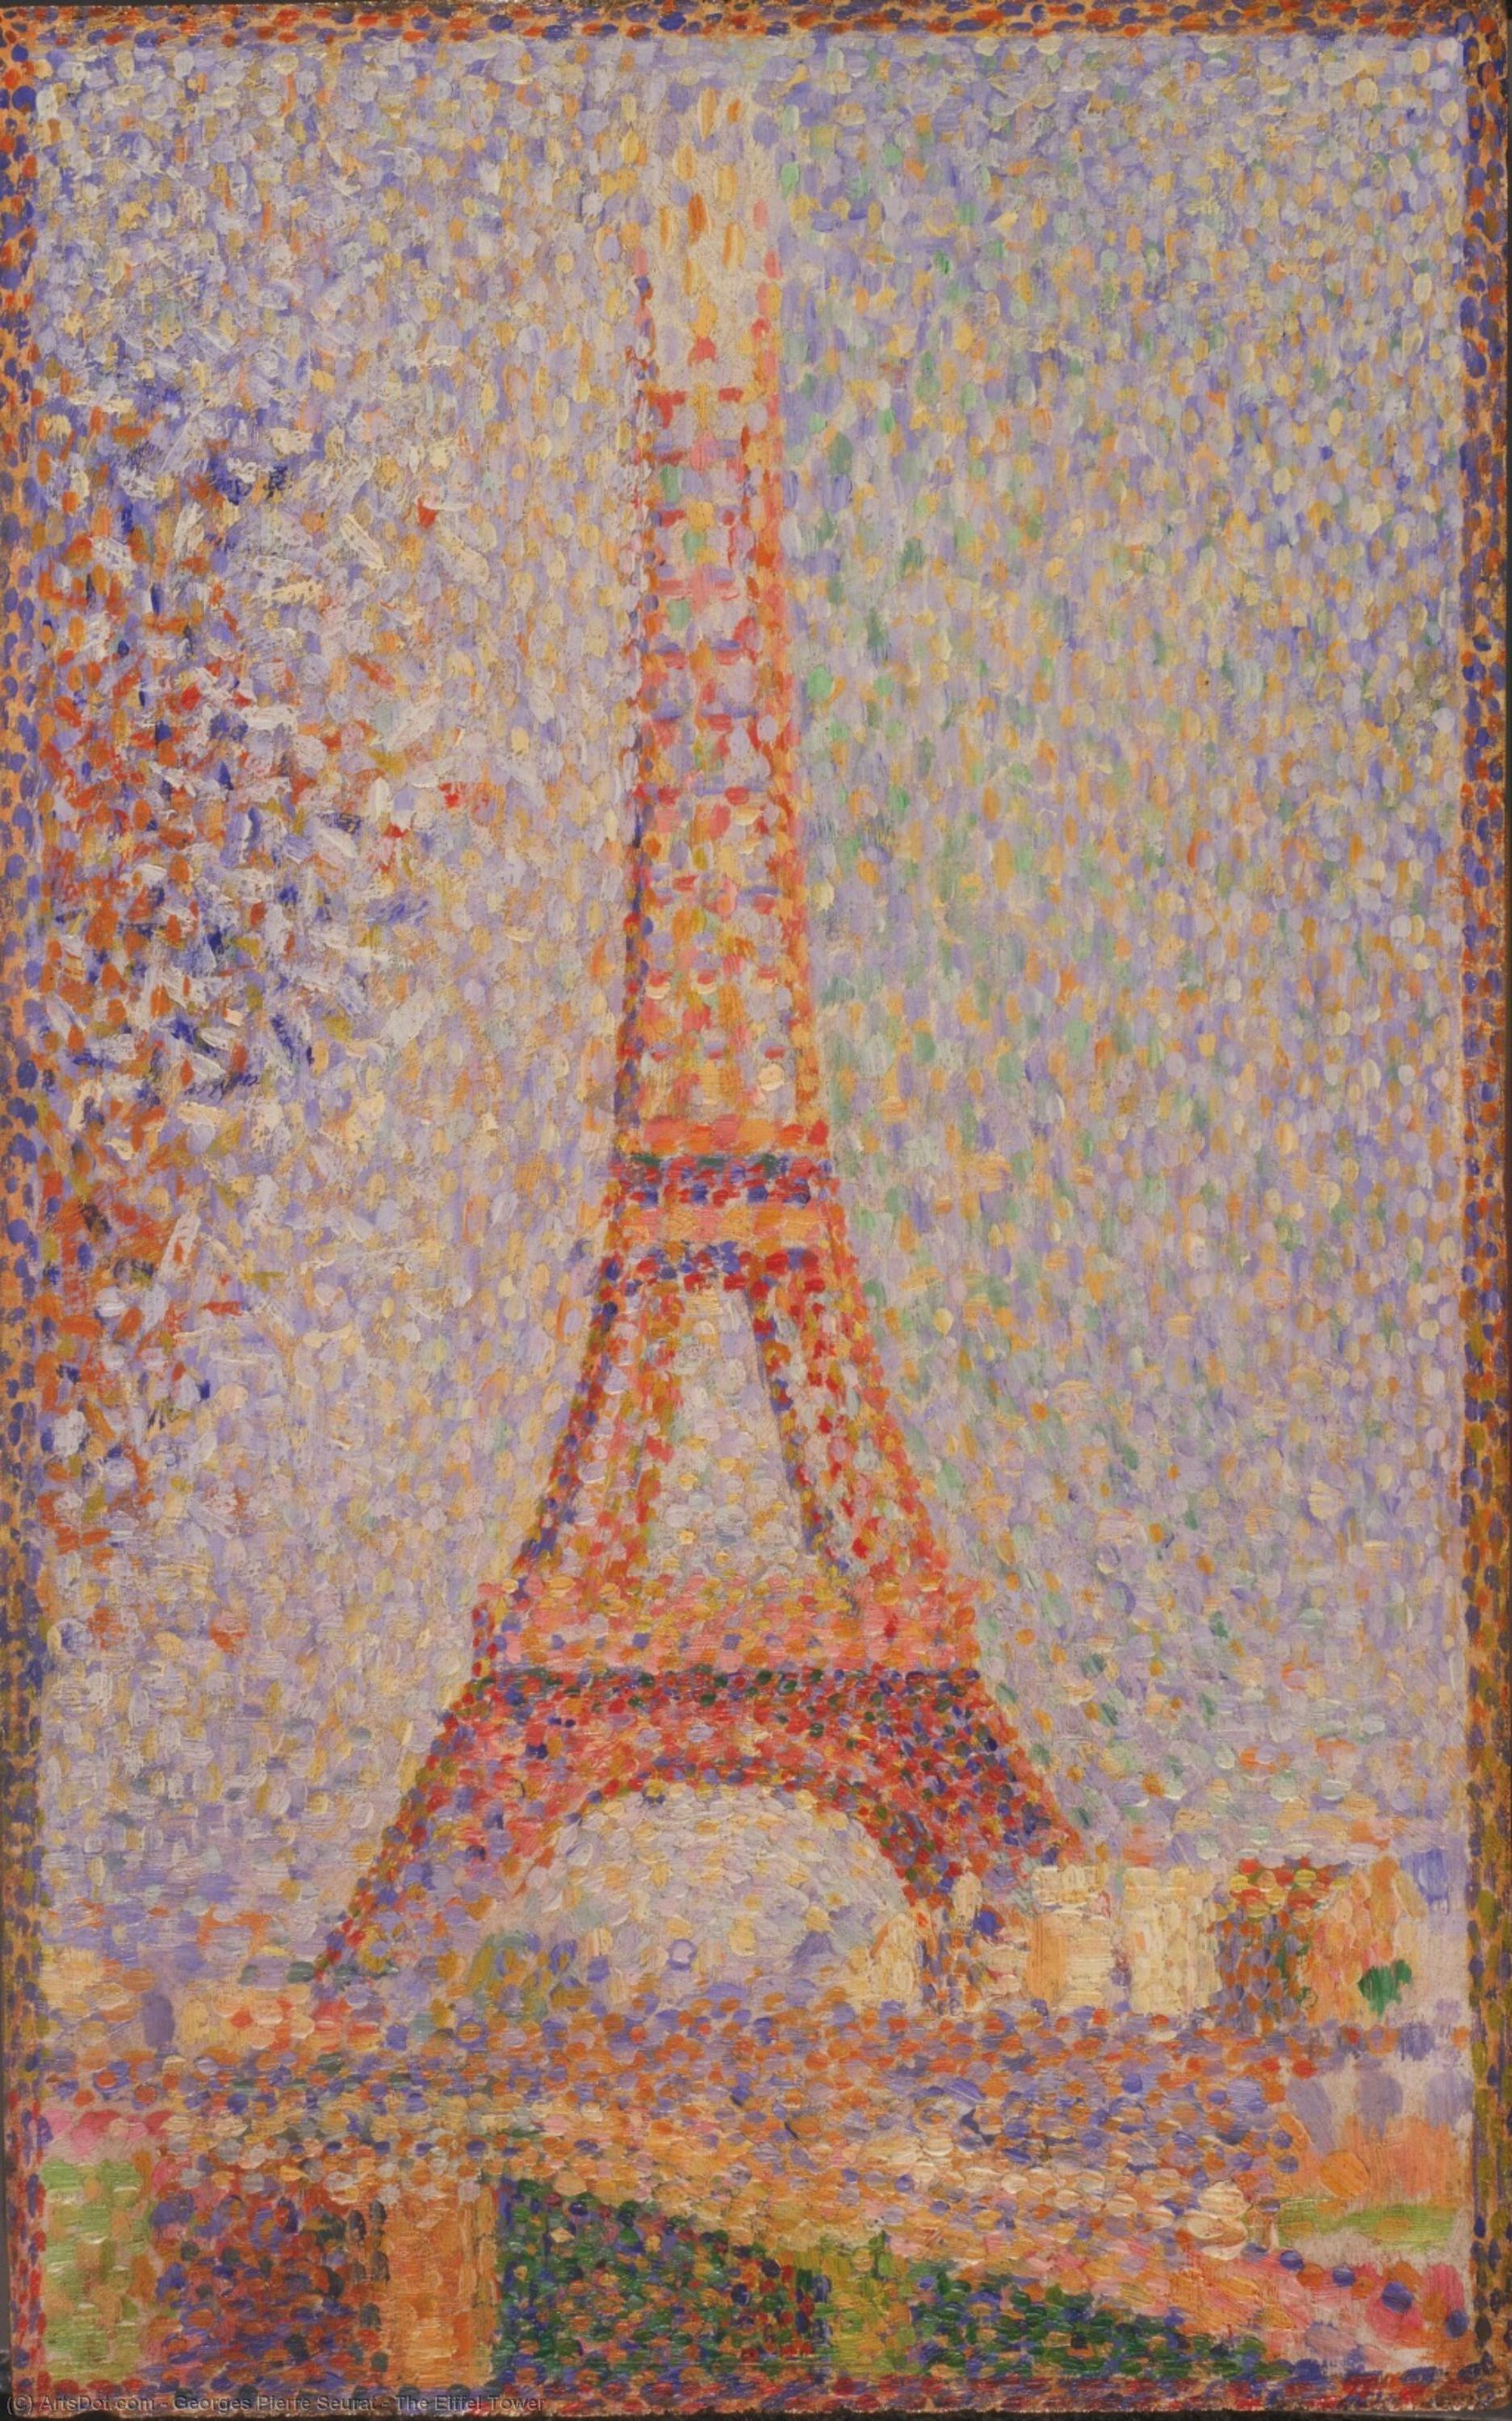 Wikioo.org - The Encyclopedia of Fine Arts - Painting, Artwork by Georges Pierre Seurat - The Eiffel Tower